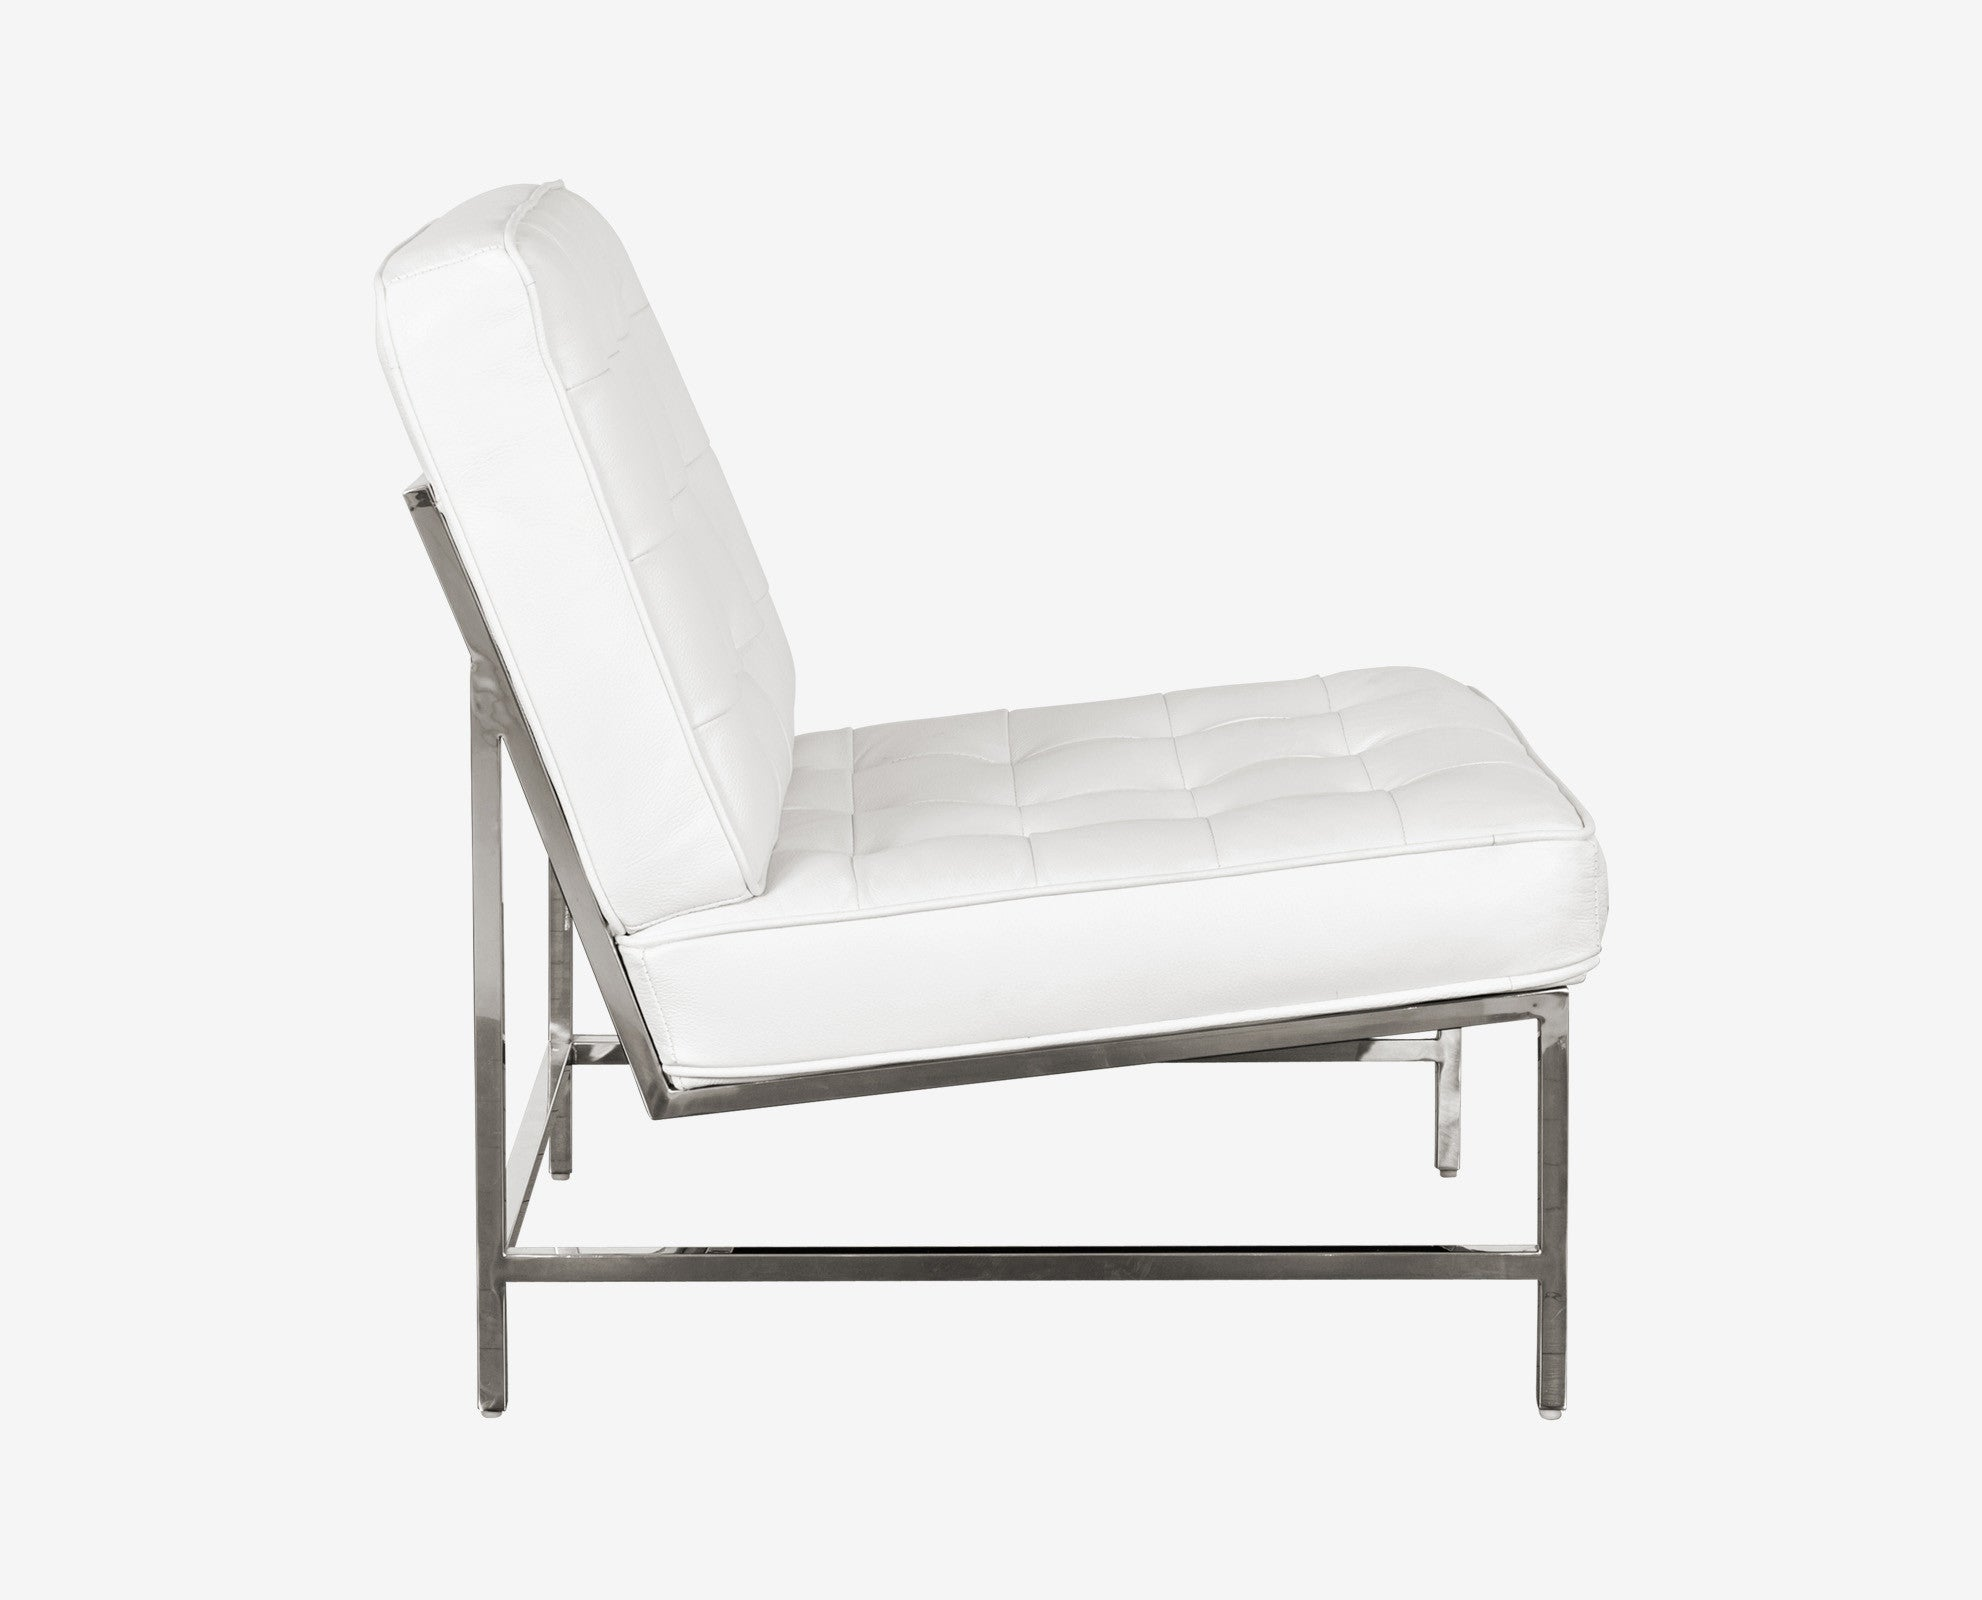 Scandinavian plush white tufted leather chrome chair